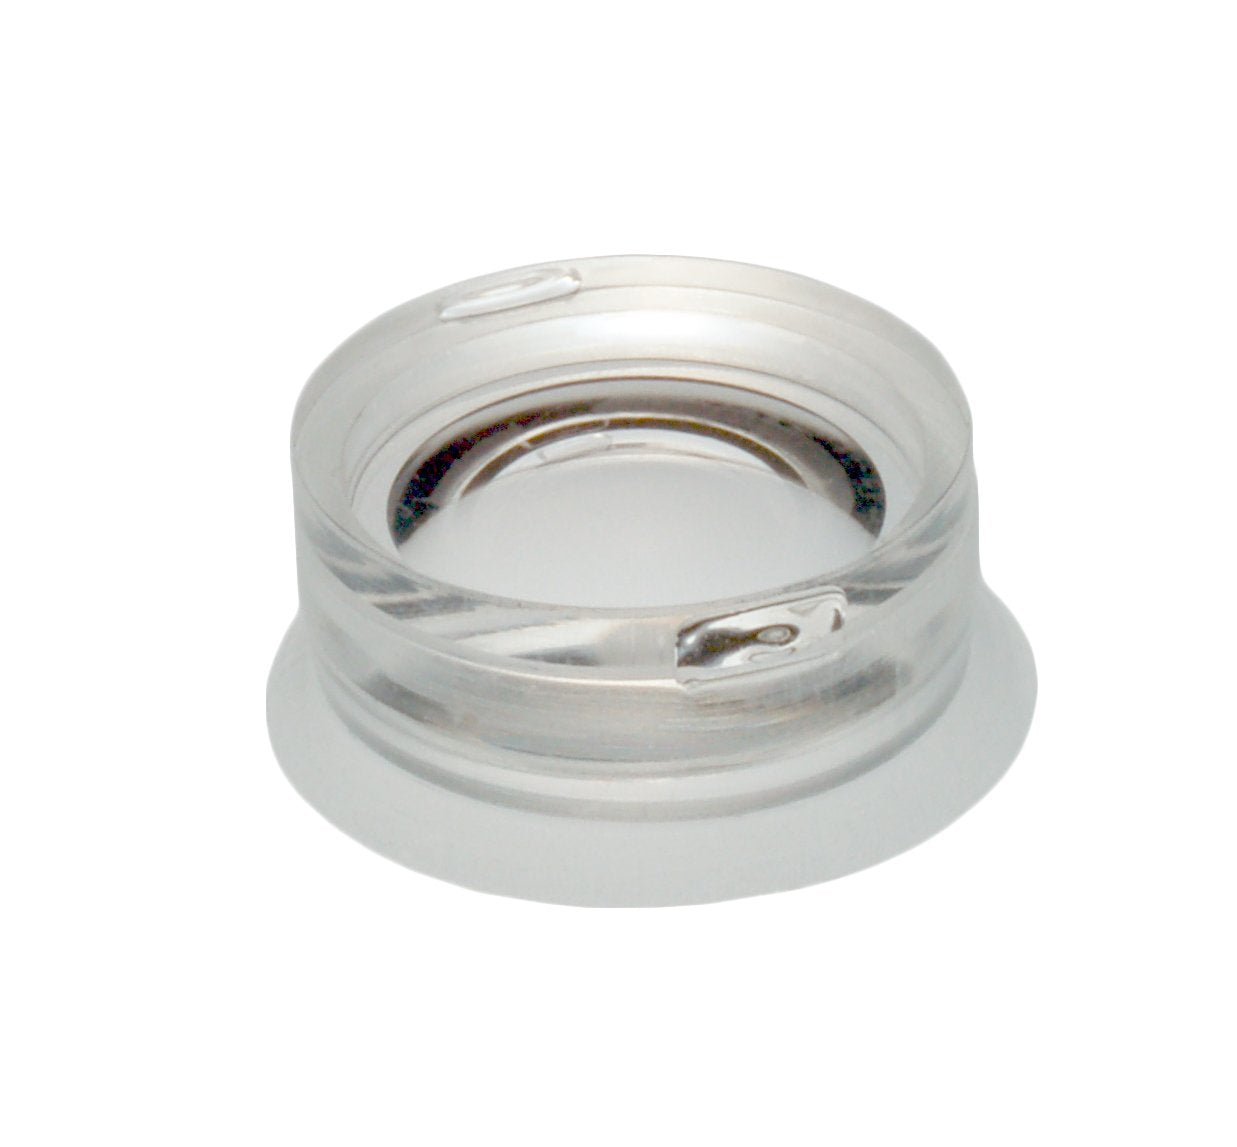 Volk®1 Single-Use Flat Lens (with SSV)